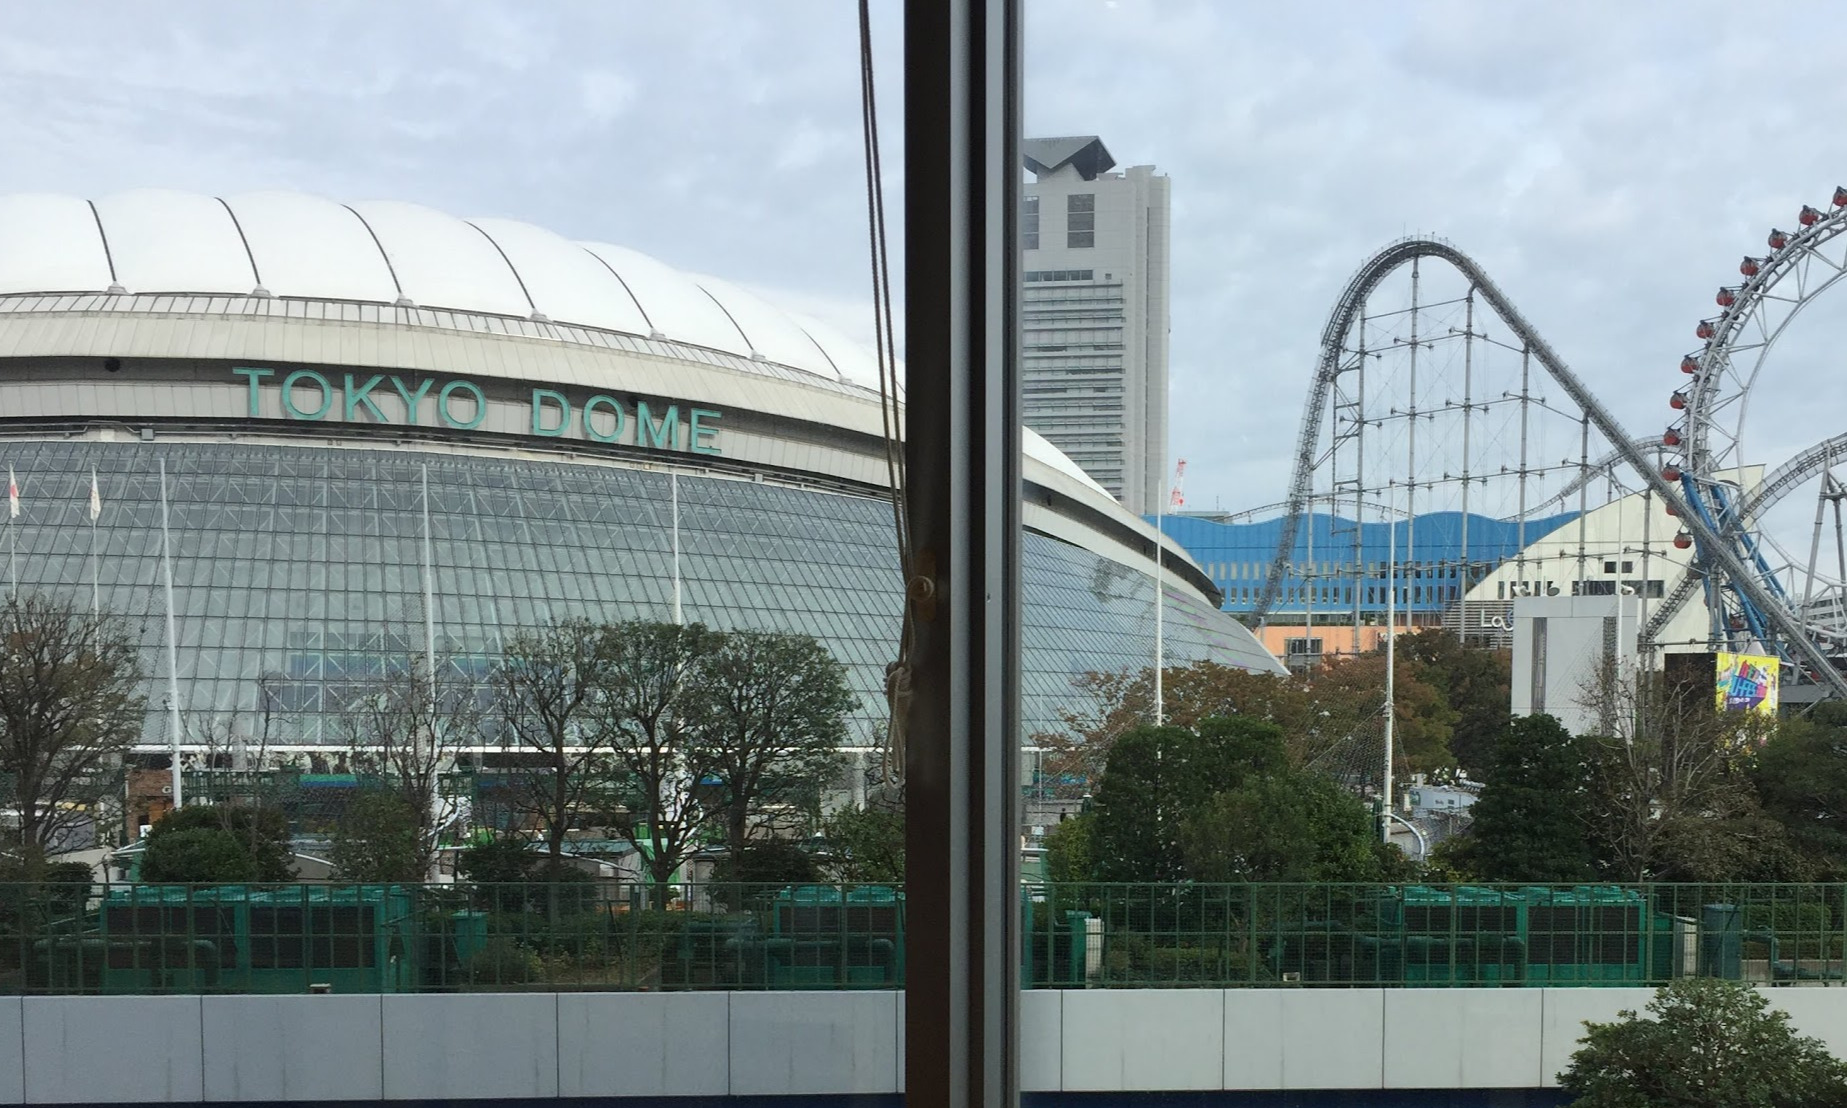 Am Tokyo Dome   story.one